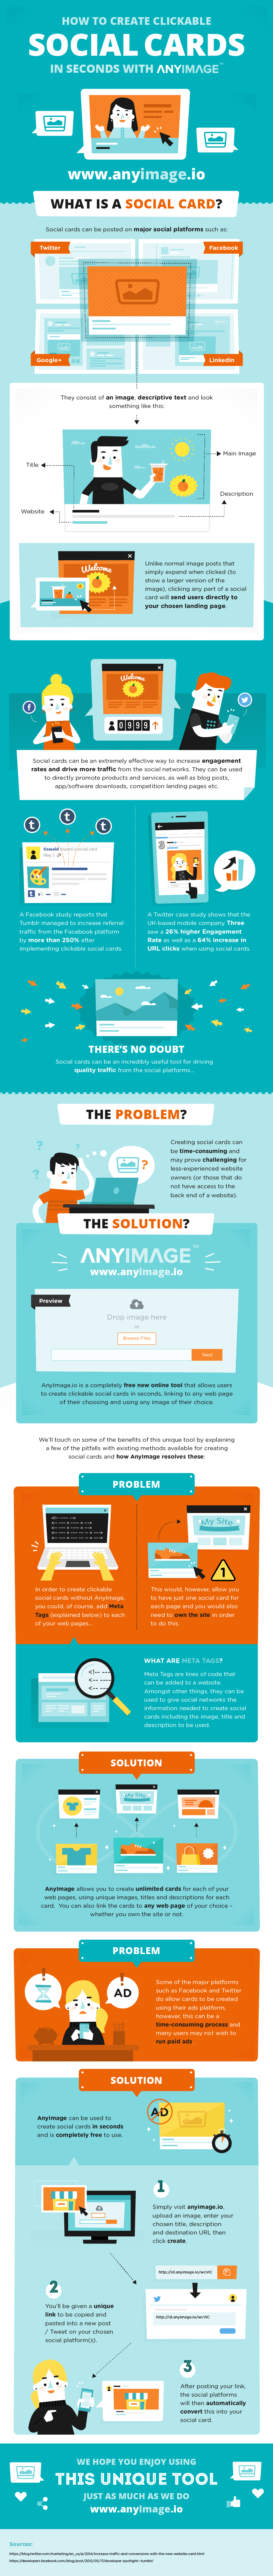 How to Create Clickable Social Cards in Seconds - Infographic